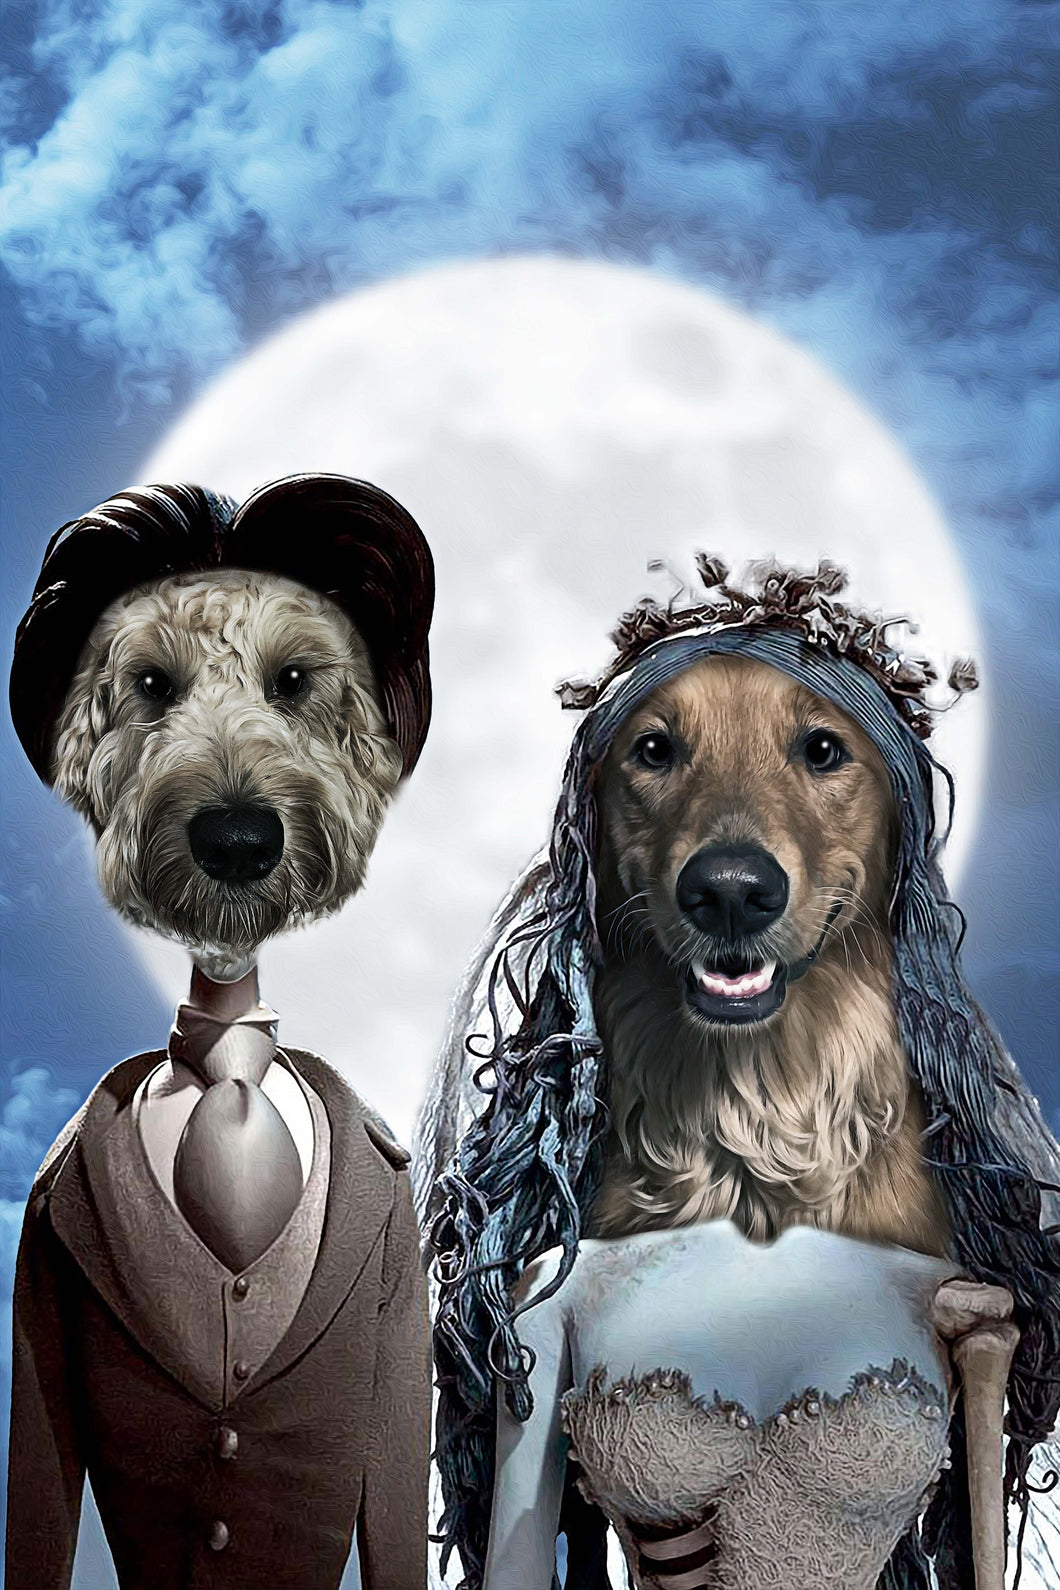 The Bride & Groom Custom Pet Portrait Digital Download - Noble Pawtrait